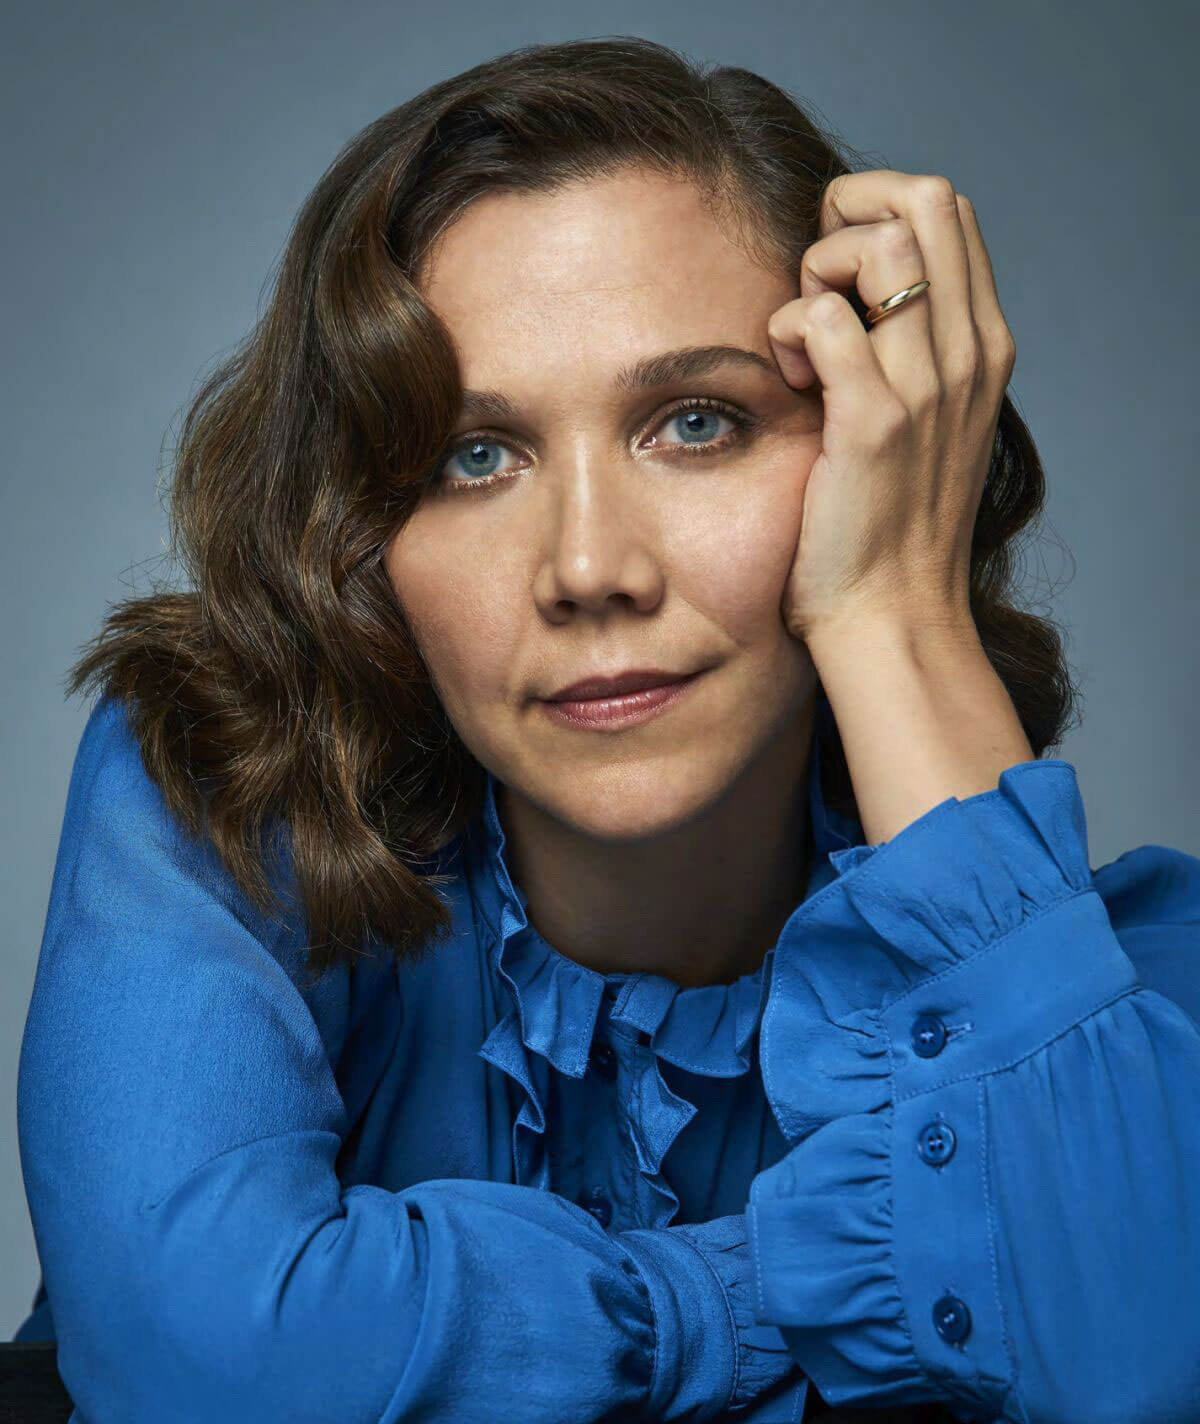 Maggie Gyllenhaal Poses for Backstage Magazine, September 2017